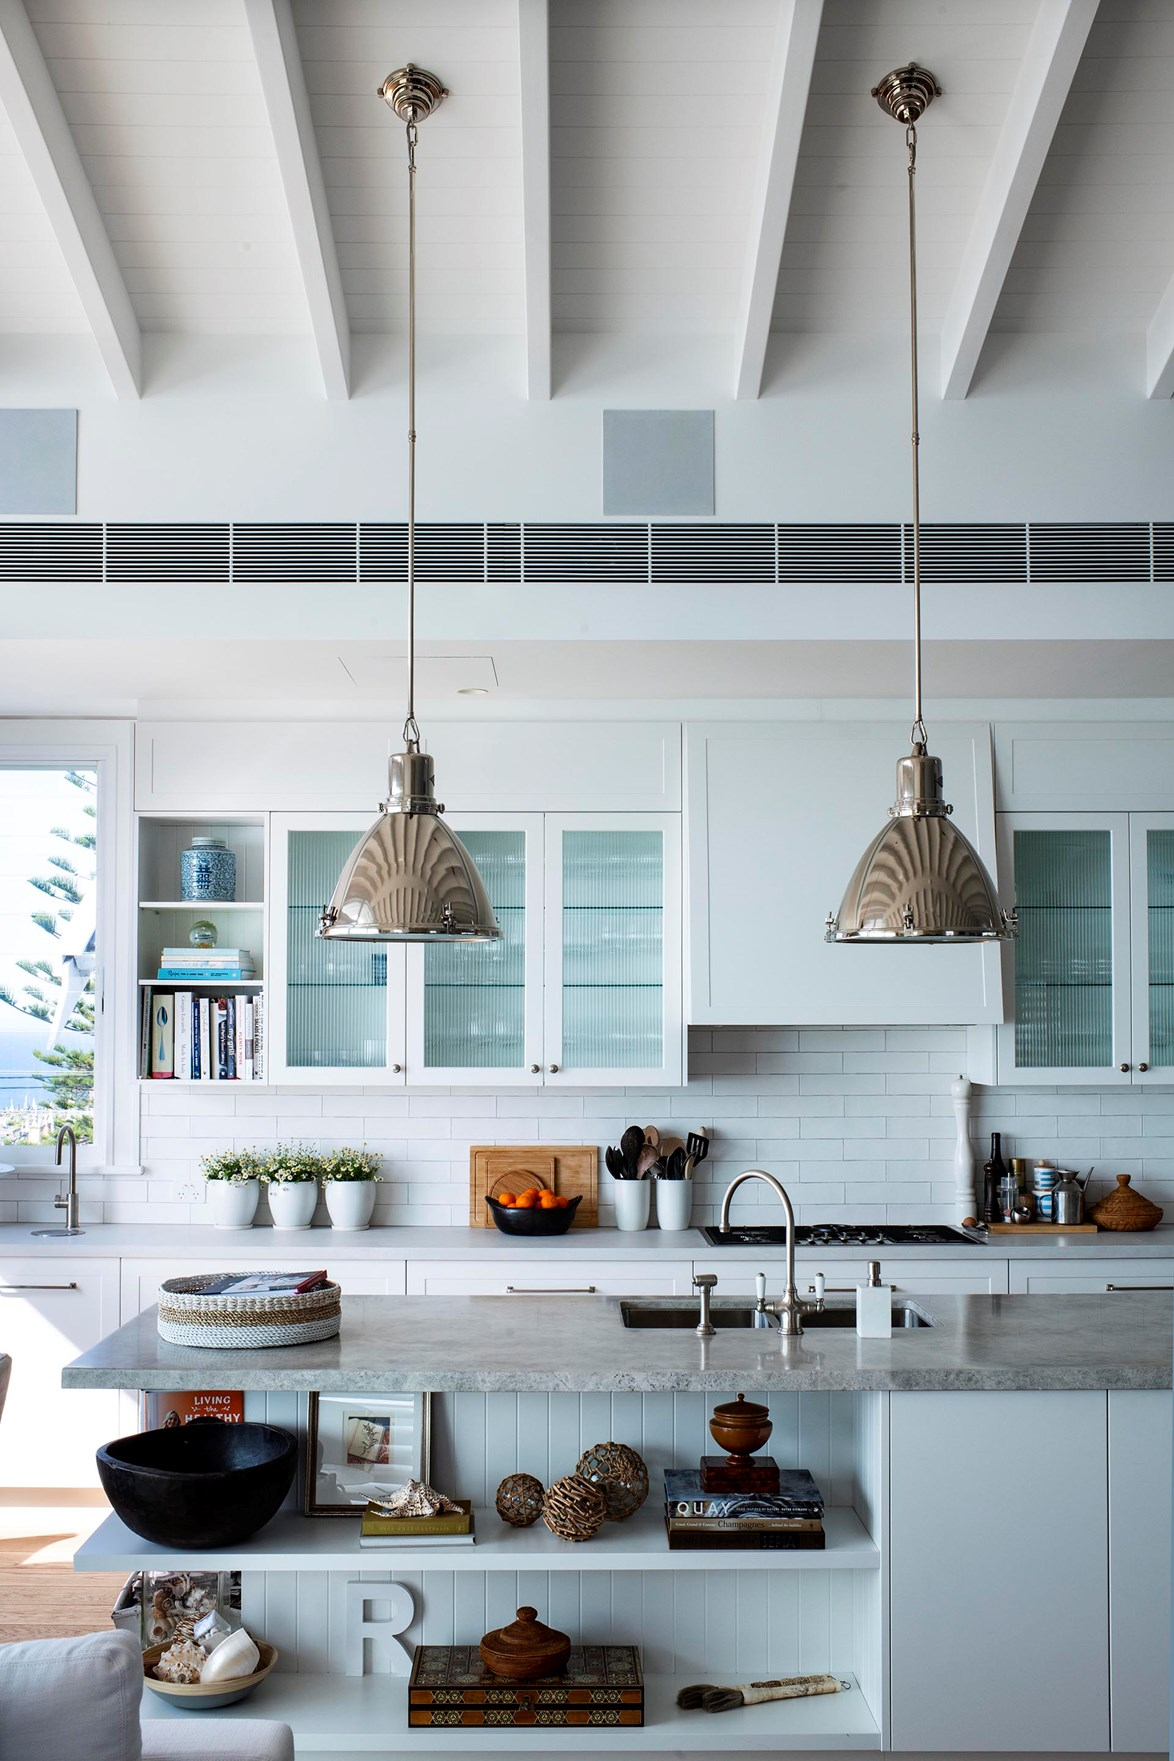 "Ralph Lauren lights hang in the [Hamptons-style kitchen](https://www.homestolove.com.au/deborah-huttons-hamptons-style-kitchen-renovation-19109|target=""_blank"")."